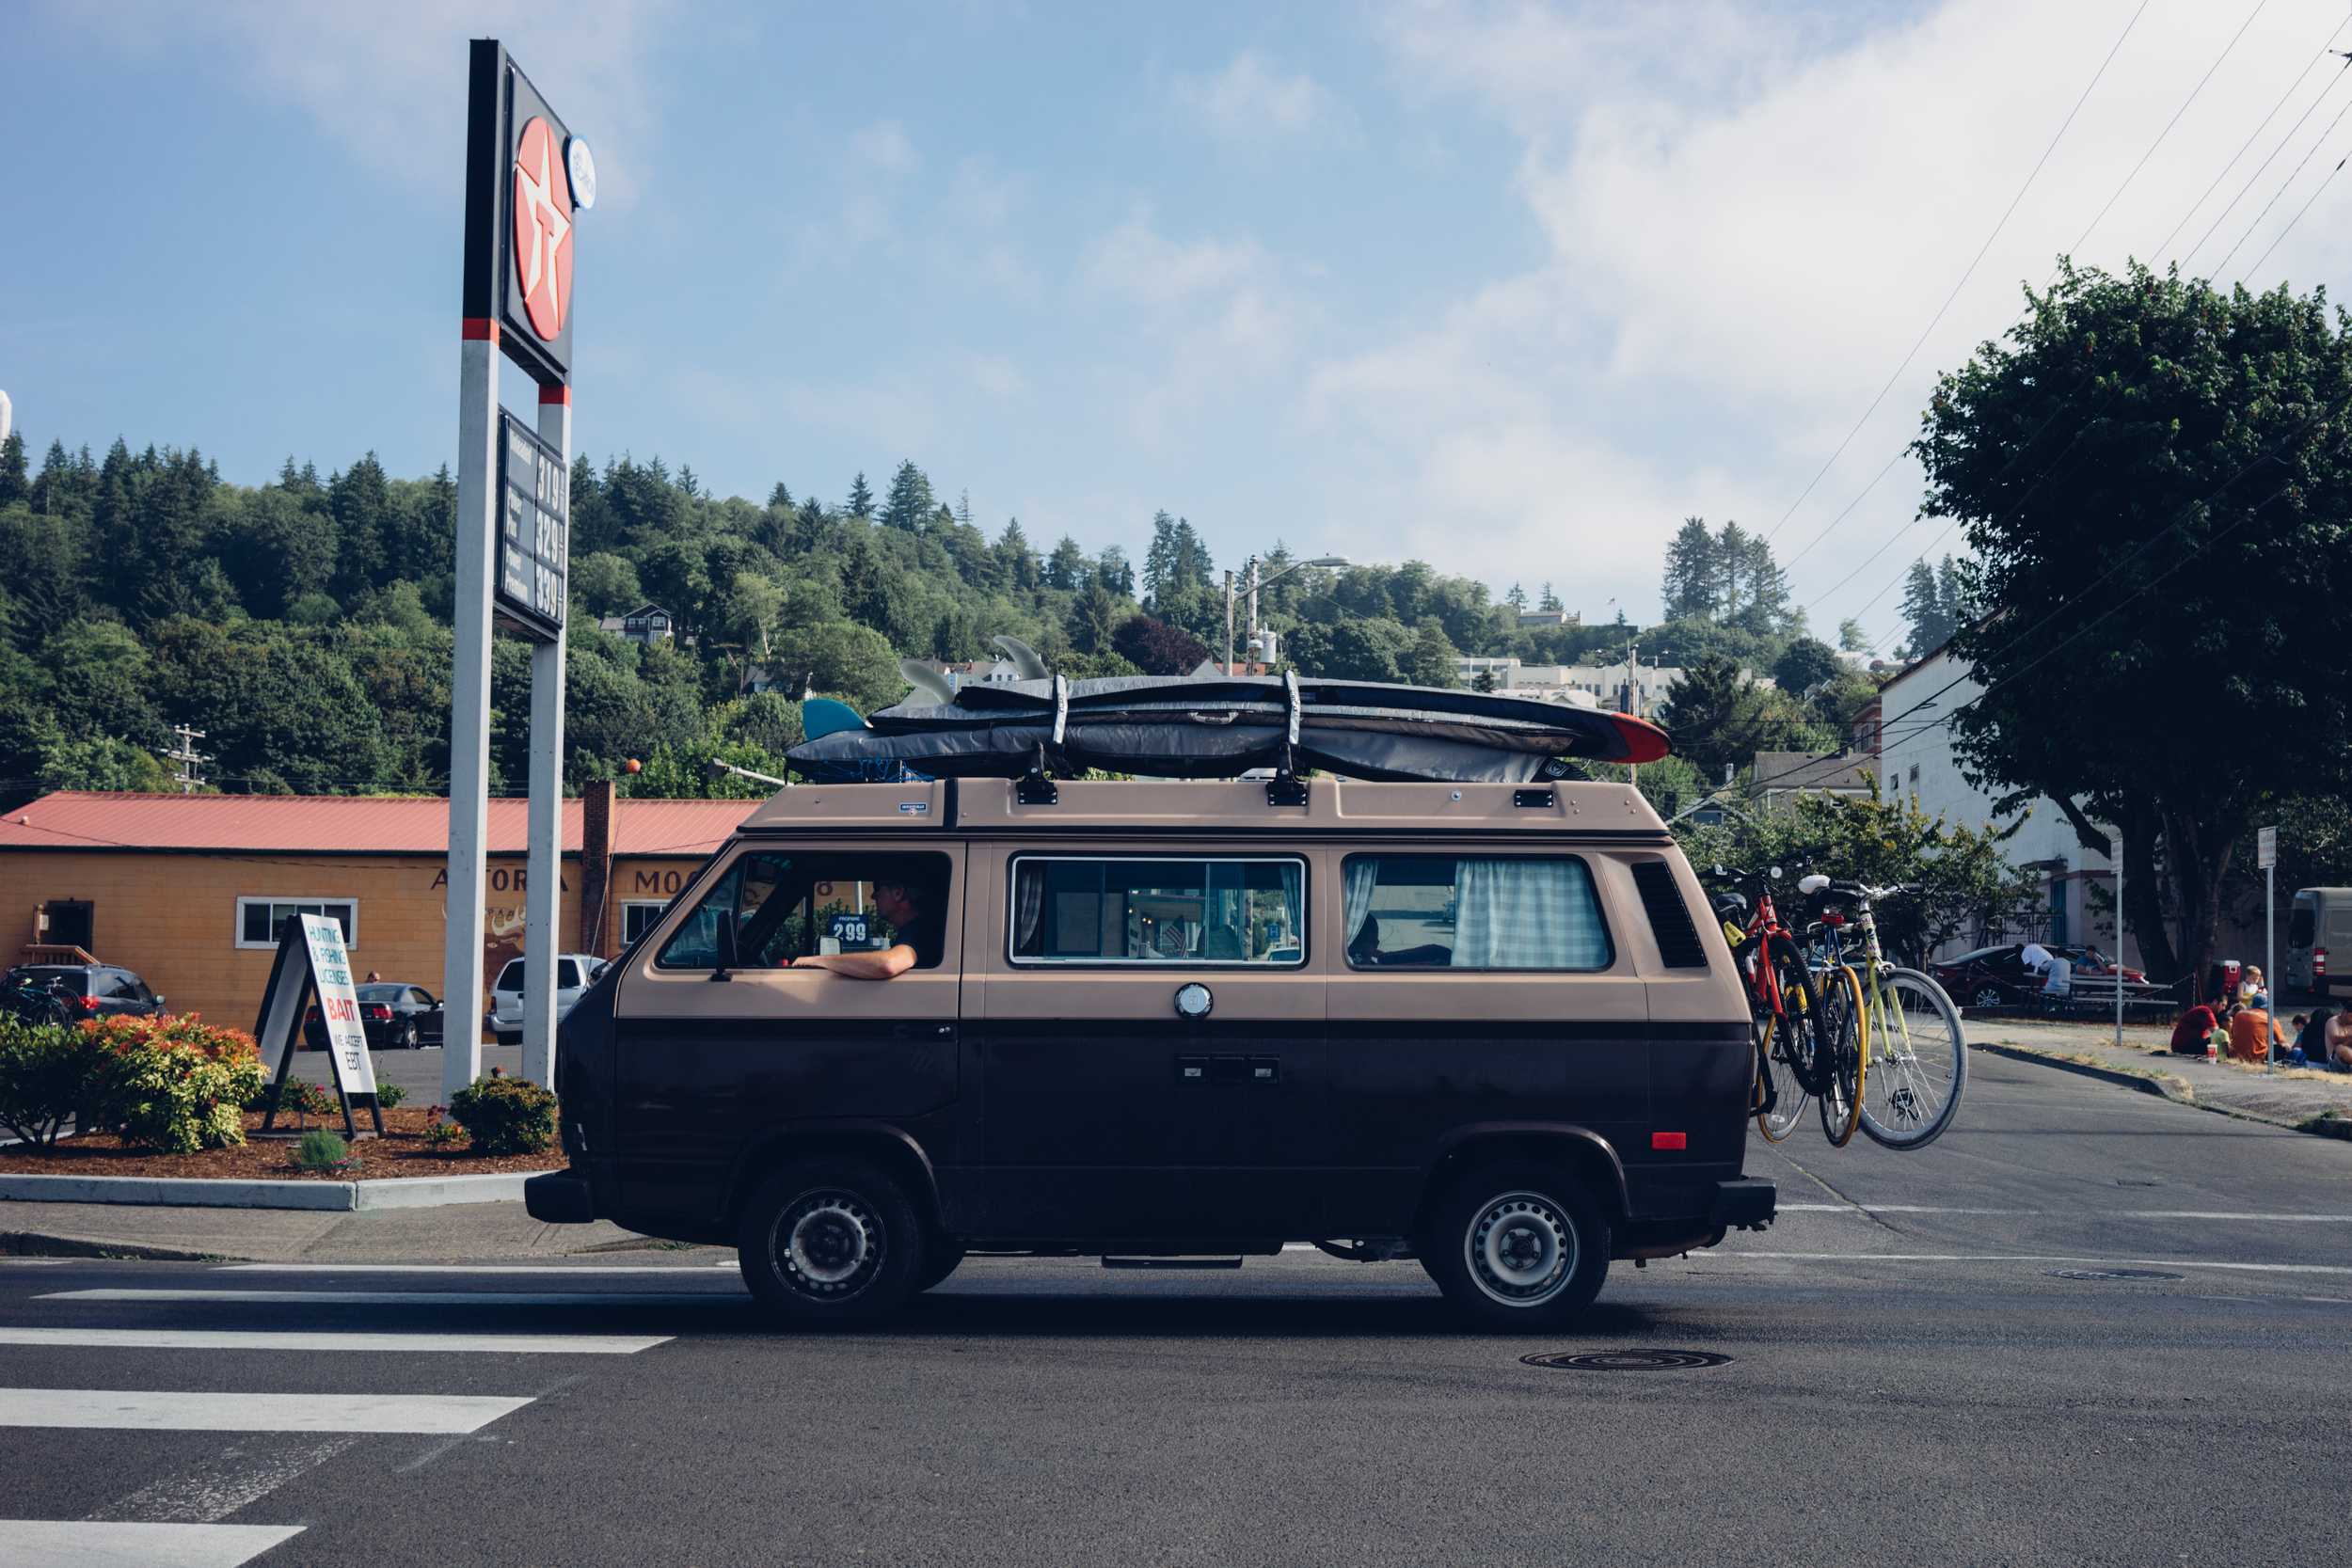 If you rank the US states by the number of Volkswagen Bus per capita, Oregon would be at the top of the list.